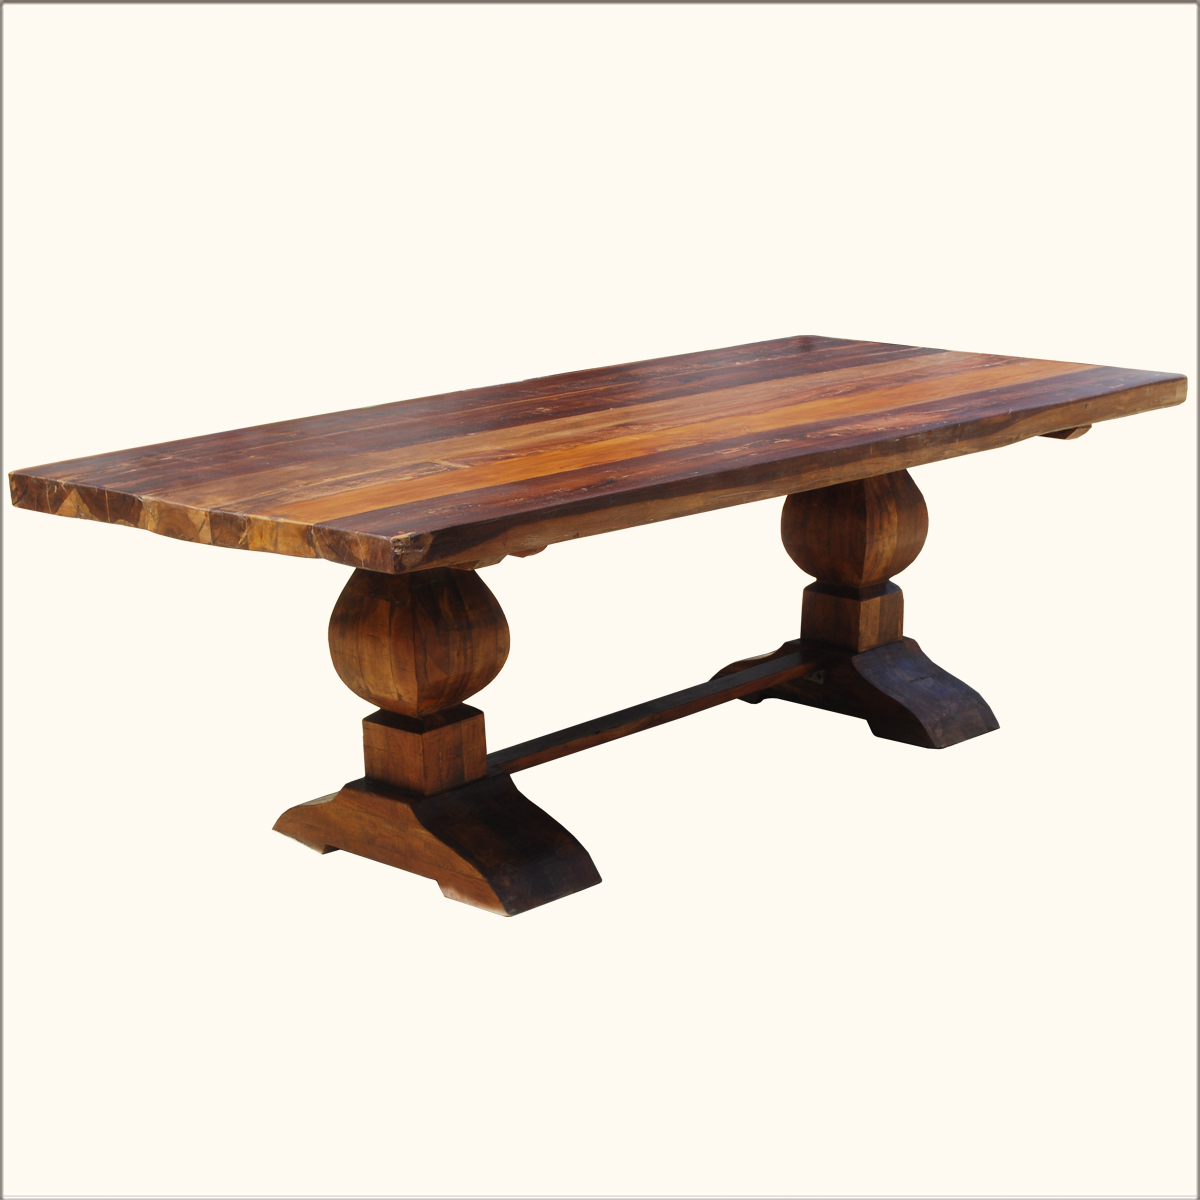 Reclaimed wood dining room table - Reclaimed Wood Dining Room Tables Photo 2